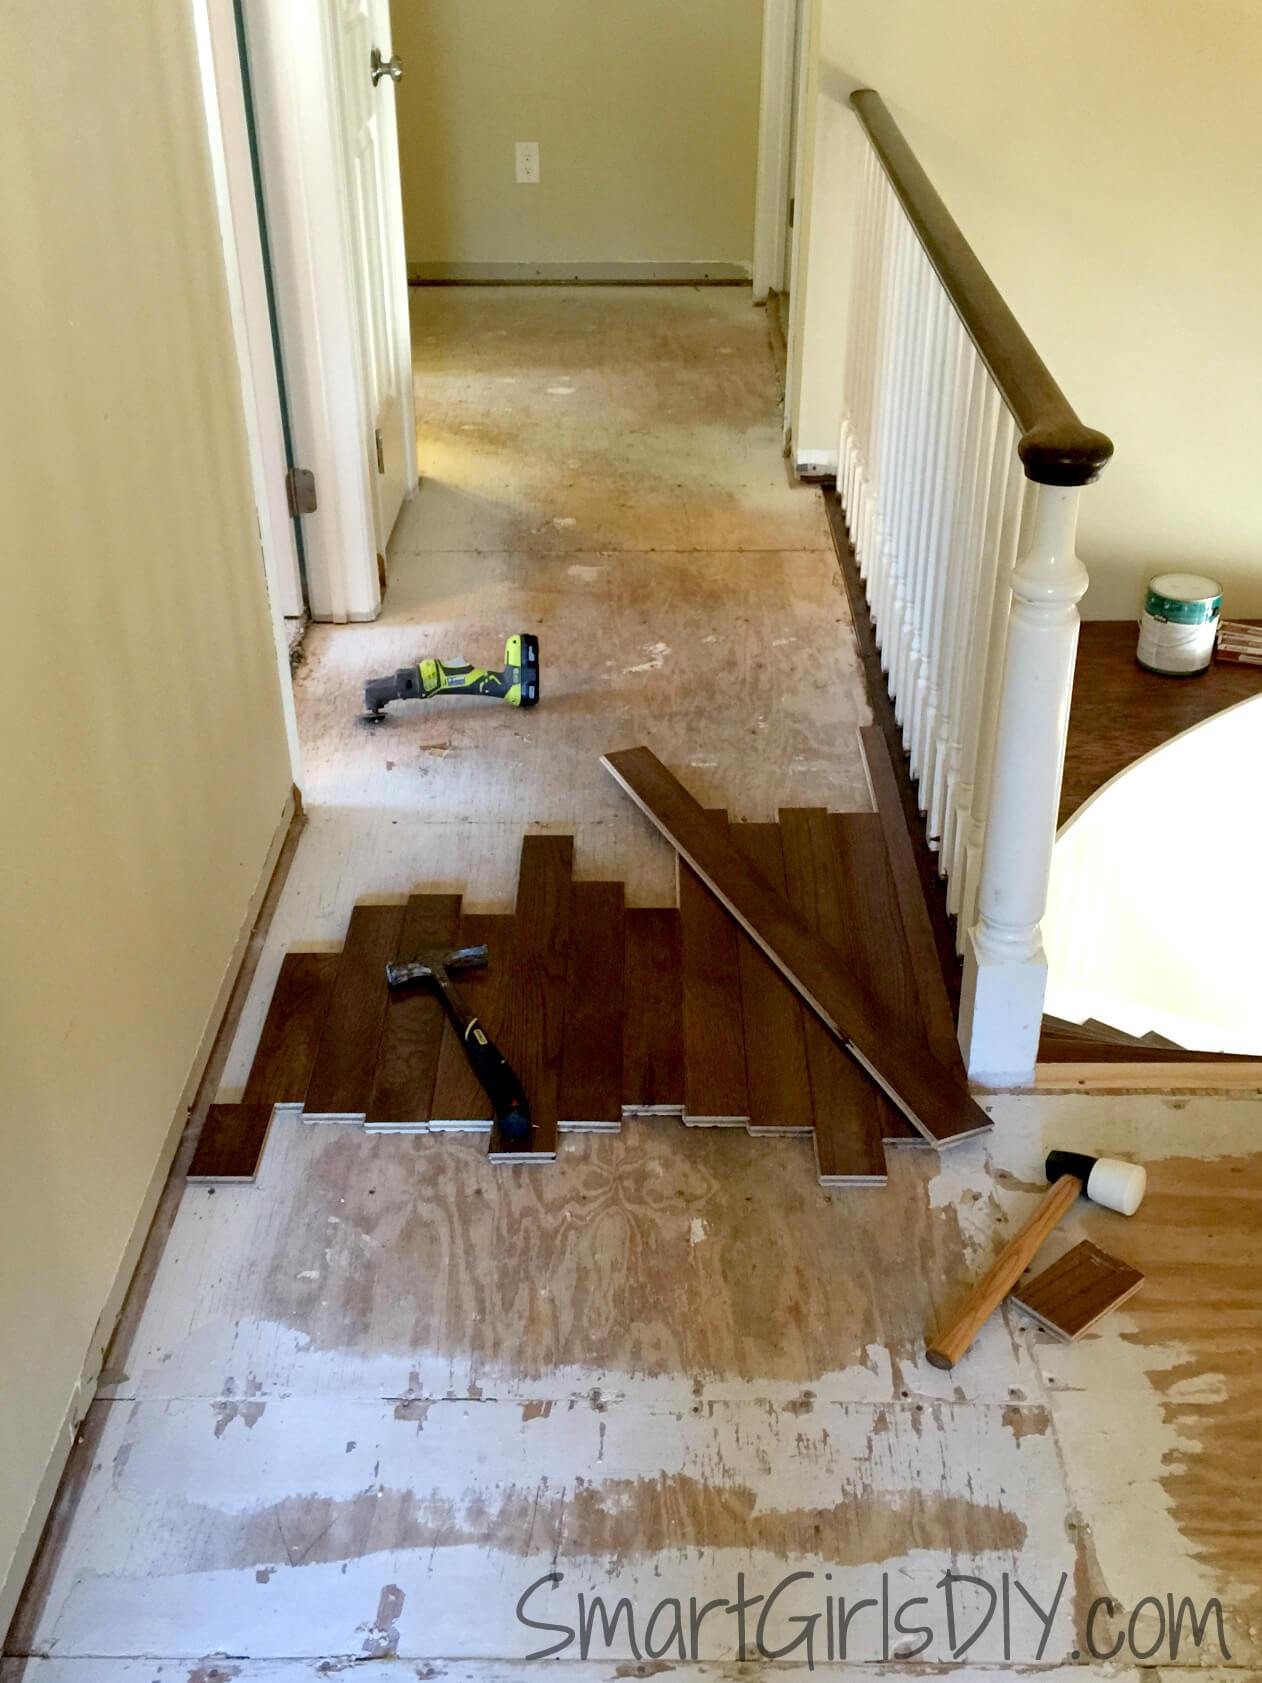 direction hardwood floors should be laid of upstairs hallway 1 installing hardwood floors with laying out bruce hardwood flooring